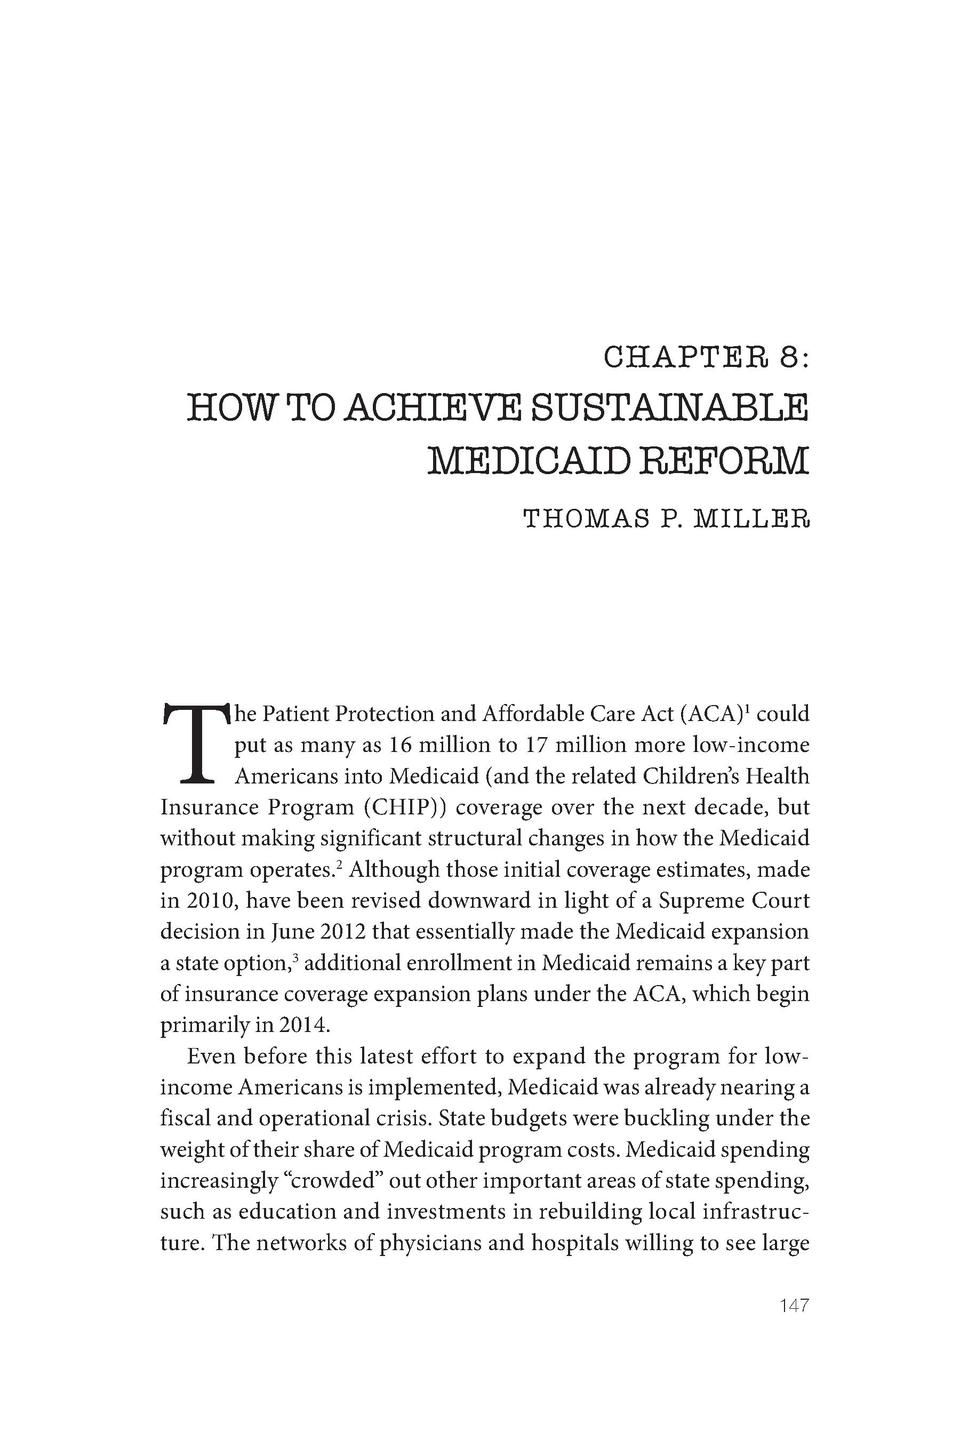 CHAPTER 8   HOW TO ACHIEVE SUSTAINABLE MEDICAID REFORM THOMAS P. MILLER  T  he Patient Protection and Affordable Care Act ...